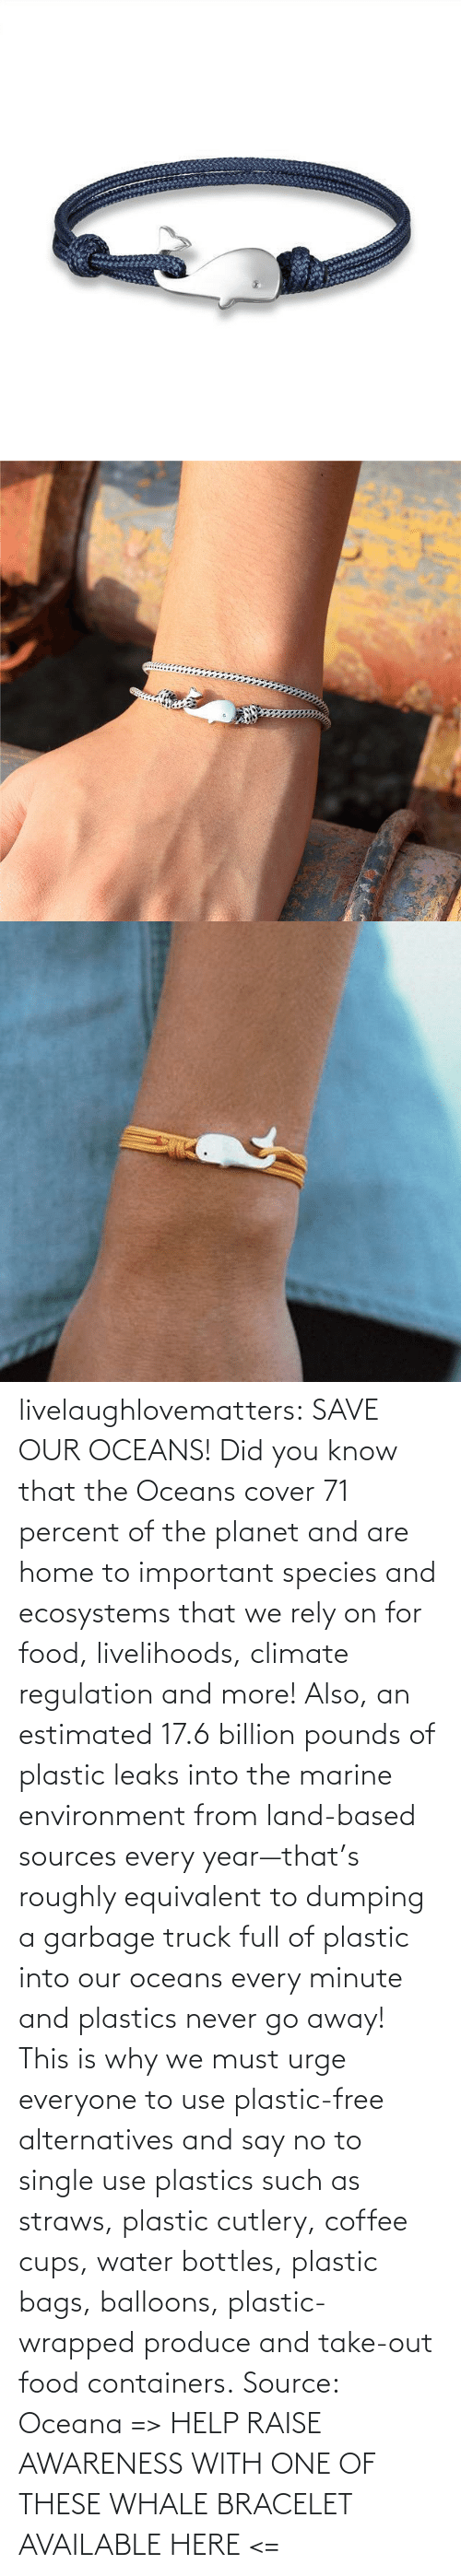 for: livelaughlovematters: SAVE OUR OCEANS!  Did you know that the Oceans cover 71 percent of the planet and are home to important species and ecosystems that we rely on for food, livelihoods, climate regulation and more! Also, an estimated 17.6 billion pounds of plastic leaks into the marine environment from land-based sources every year—that's roughly equivalent to dumping a garbage truck full of plastic into our oceans every minute and plastics never go away! This is why we must urge everyone to use plastic-free alternatives and say no to single use plastics such as straws, plastic cutlery, coffee cups, water bottles, plastic bags, balloons, plastic-wrapped produce and take-out food containers. Source: Oceana => HELP RAISE AWARENESS WITH ONE OF THESE WHALE BRACELET AVAILABLE HERE <=